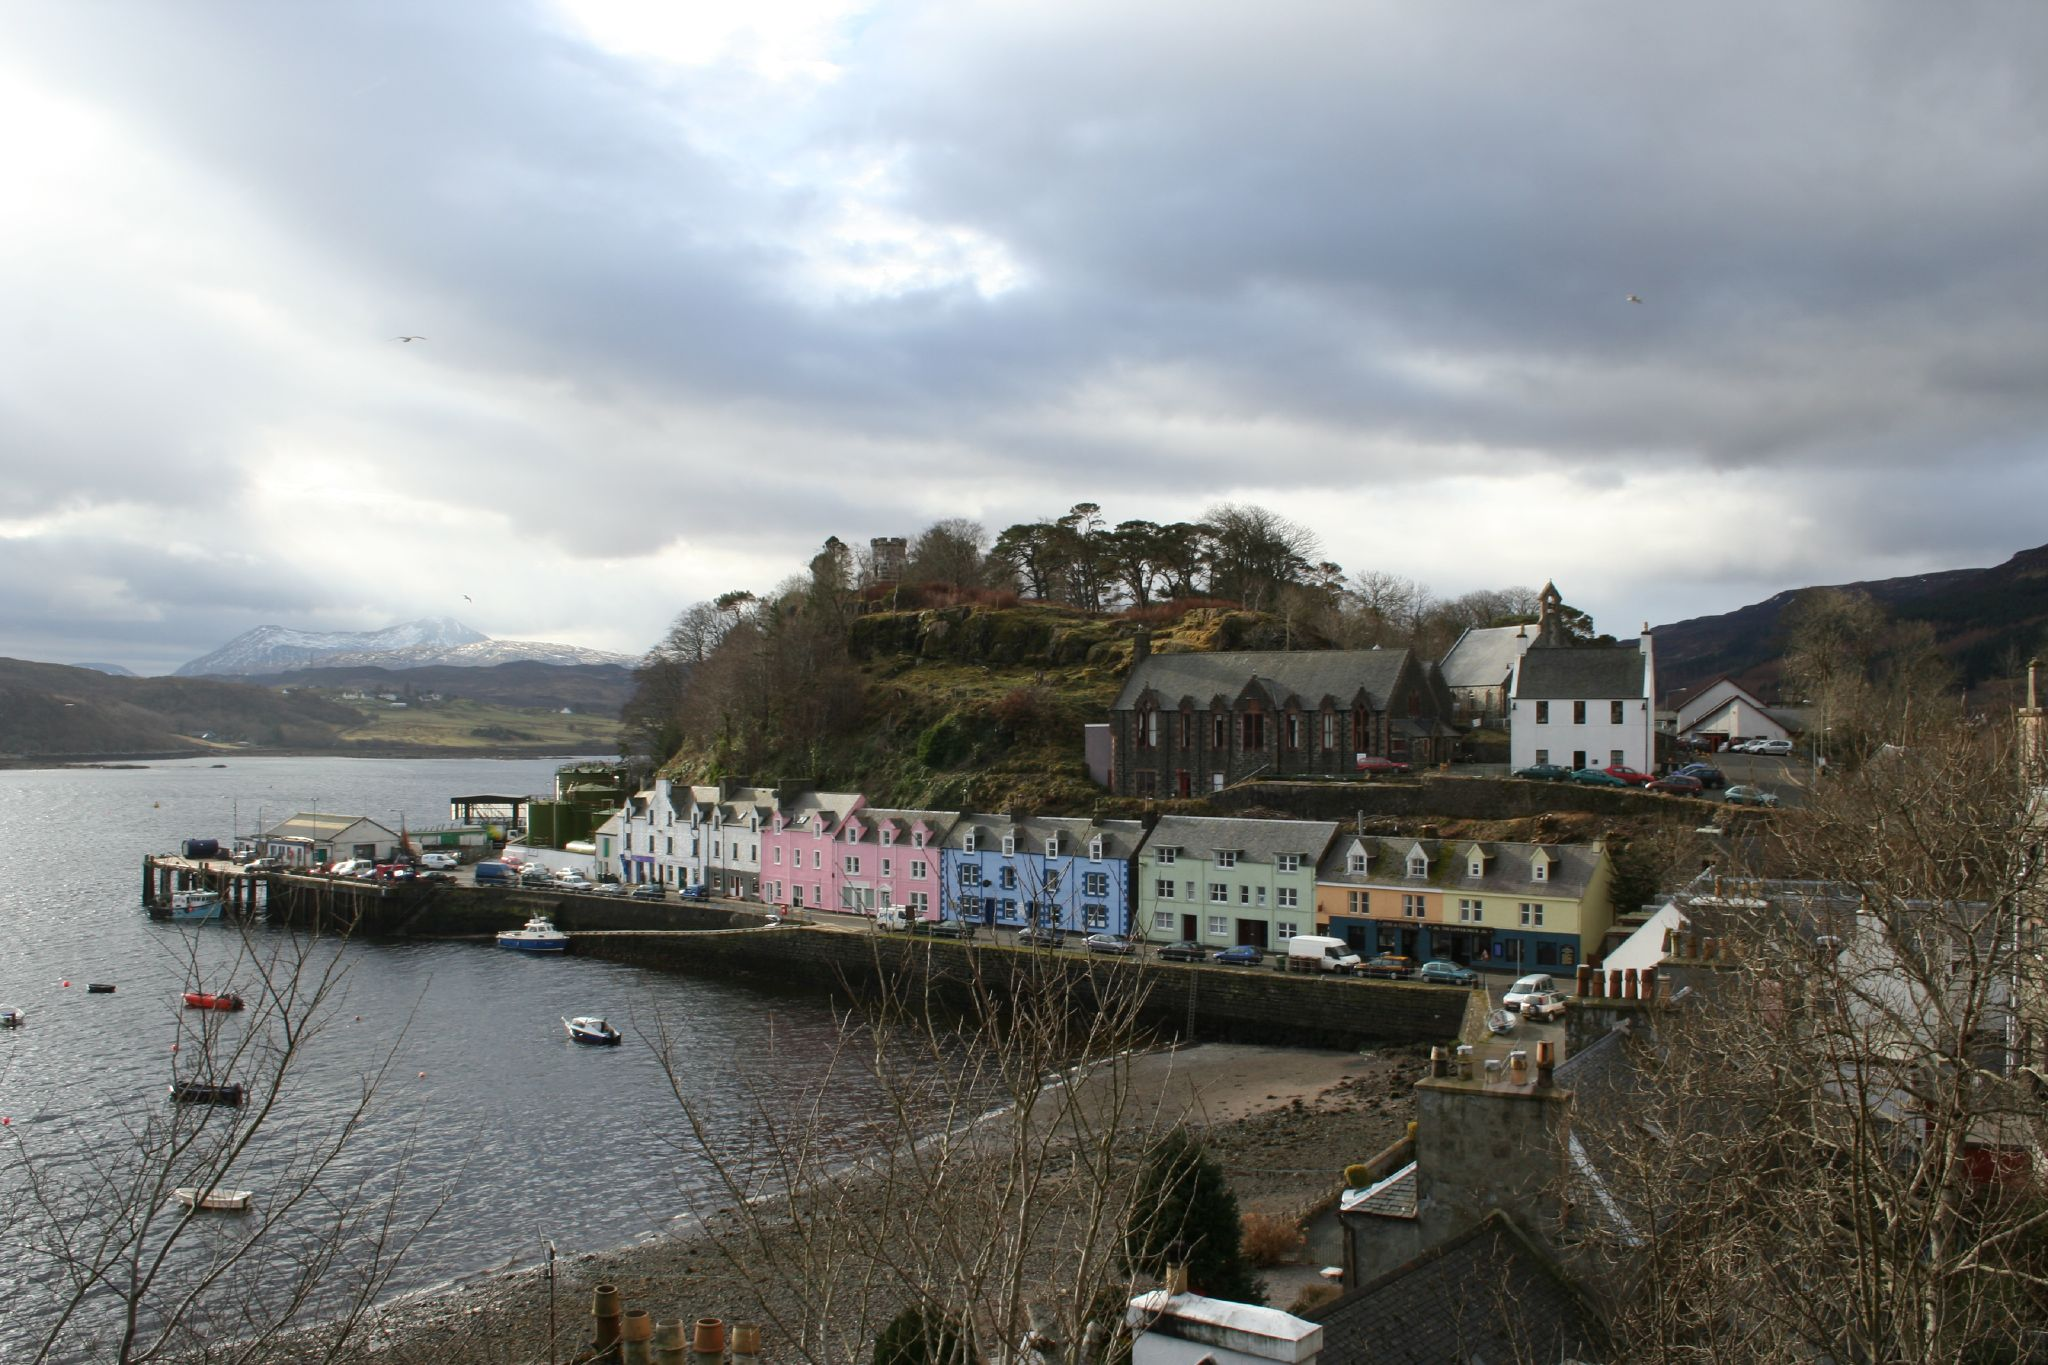 Skye Portree arjecahn Top 5 Highland Haunts for Walkers